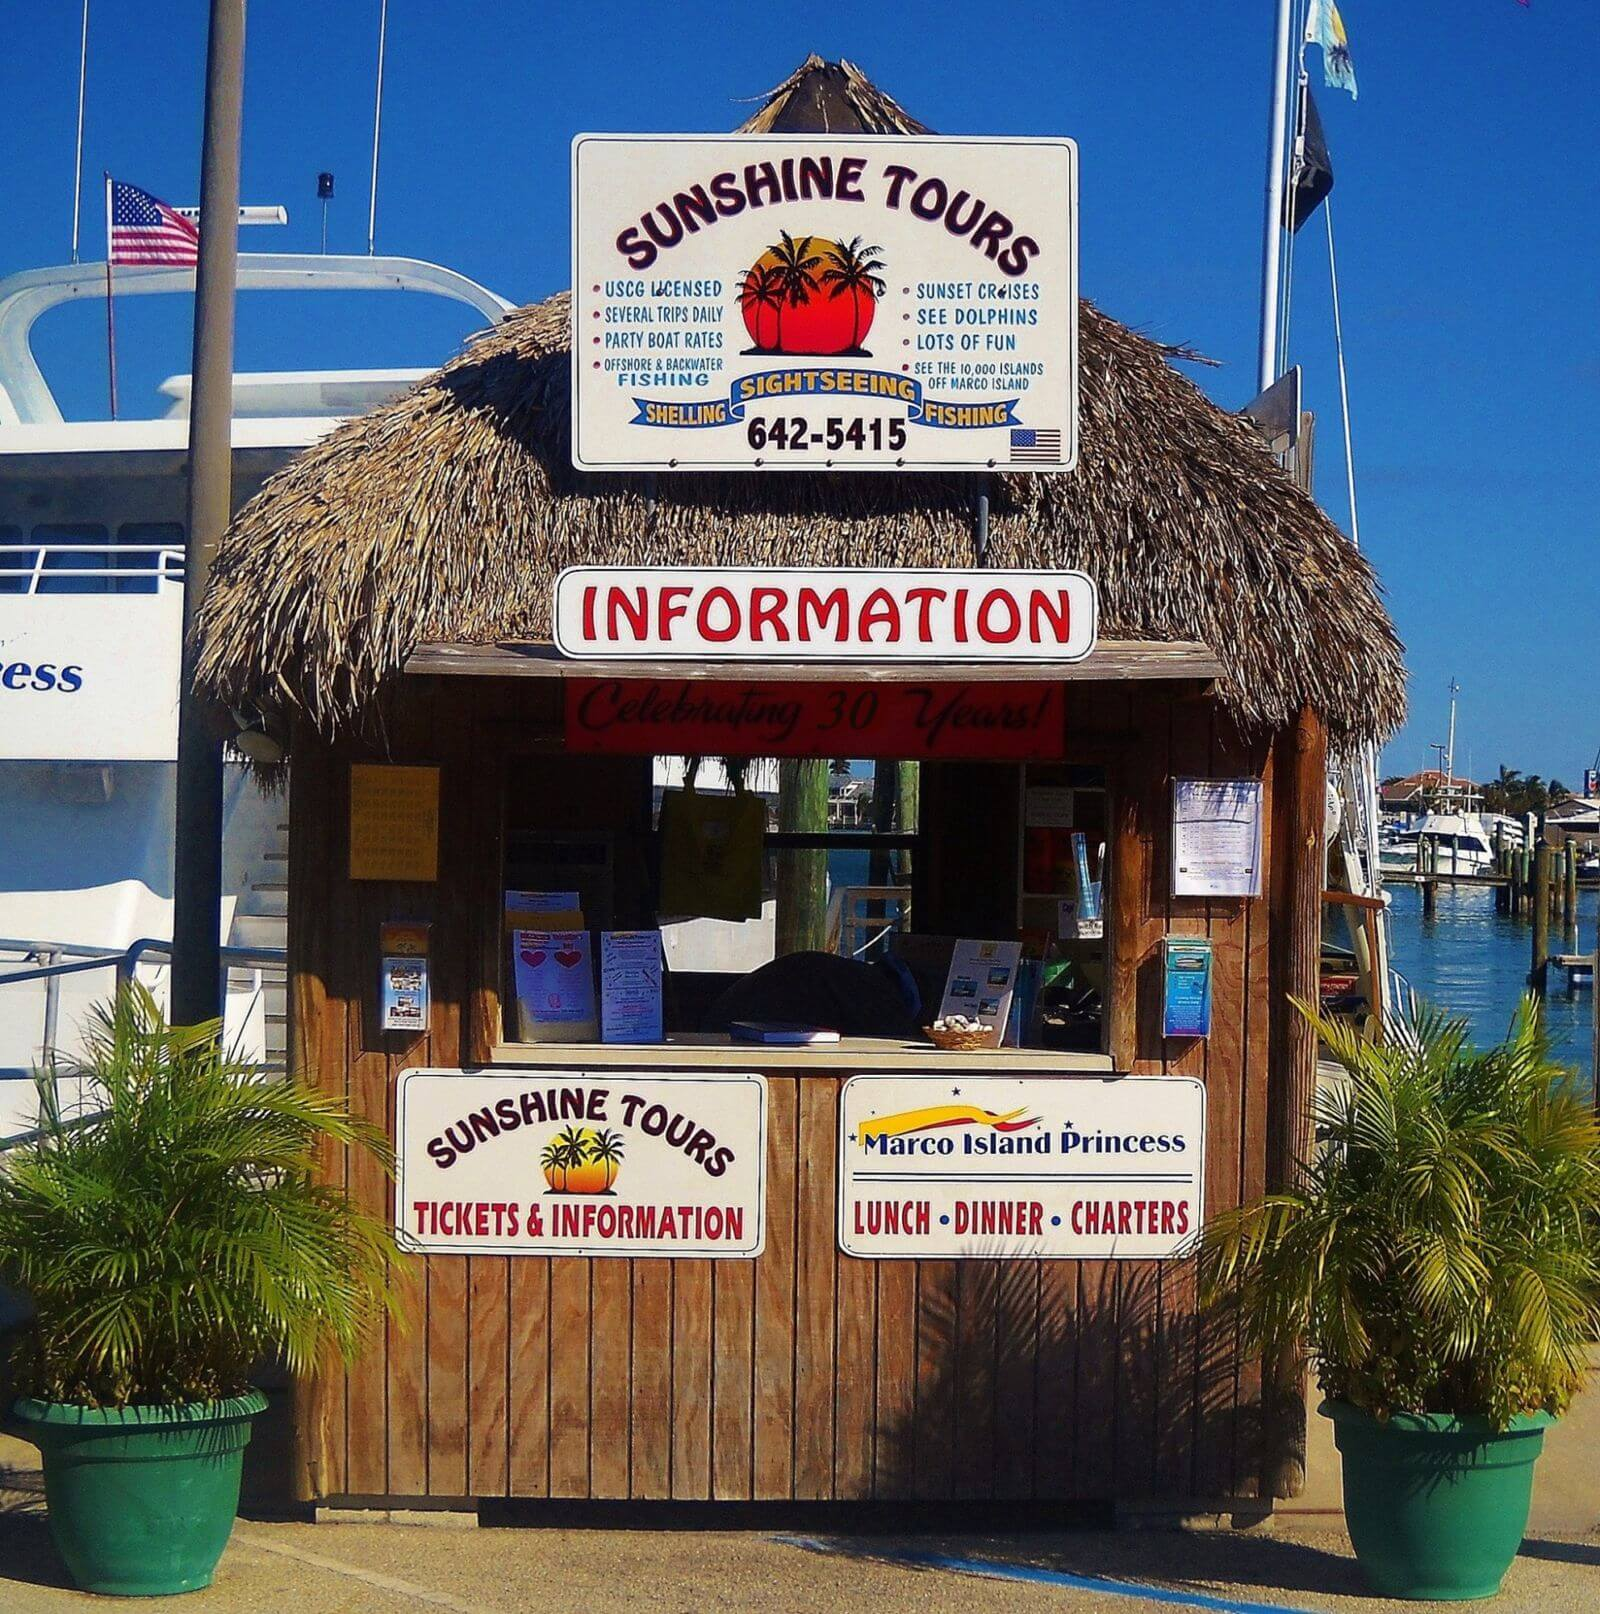 MustDo.com | Sunshine Tours offers charter fishing, sightseeing and shelling tours from Marco Island, Florida